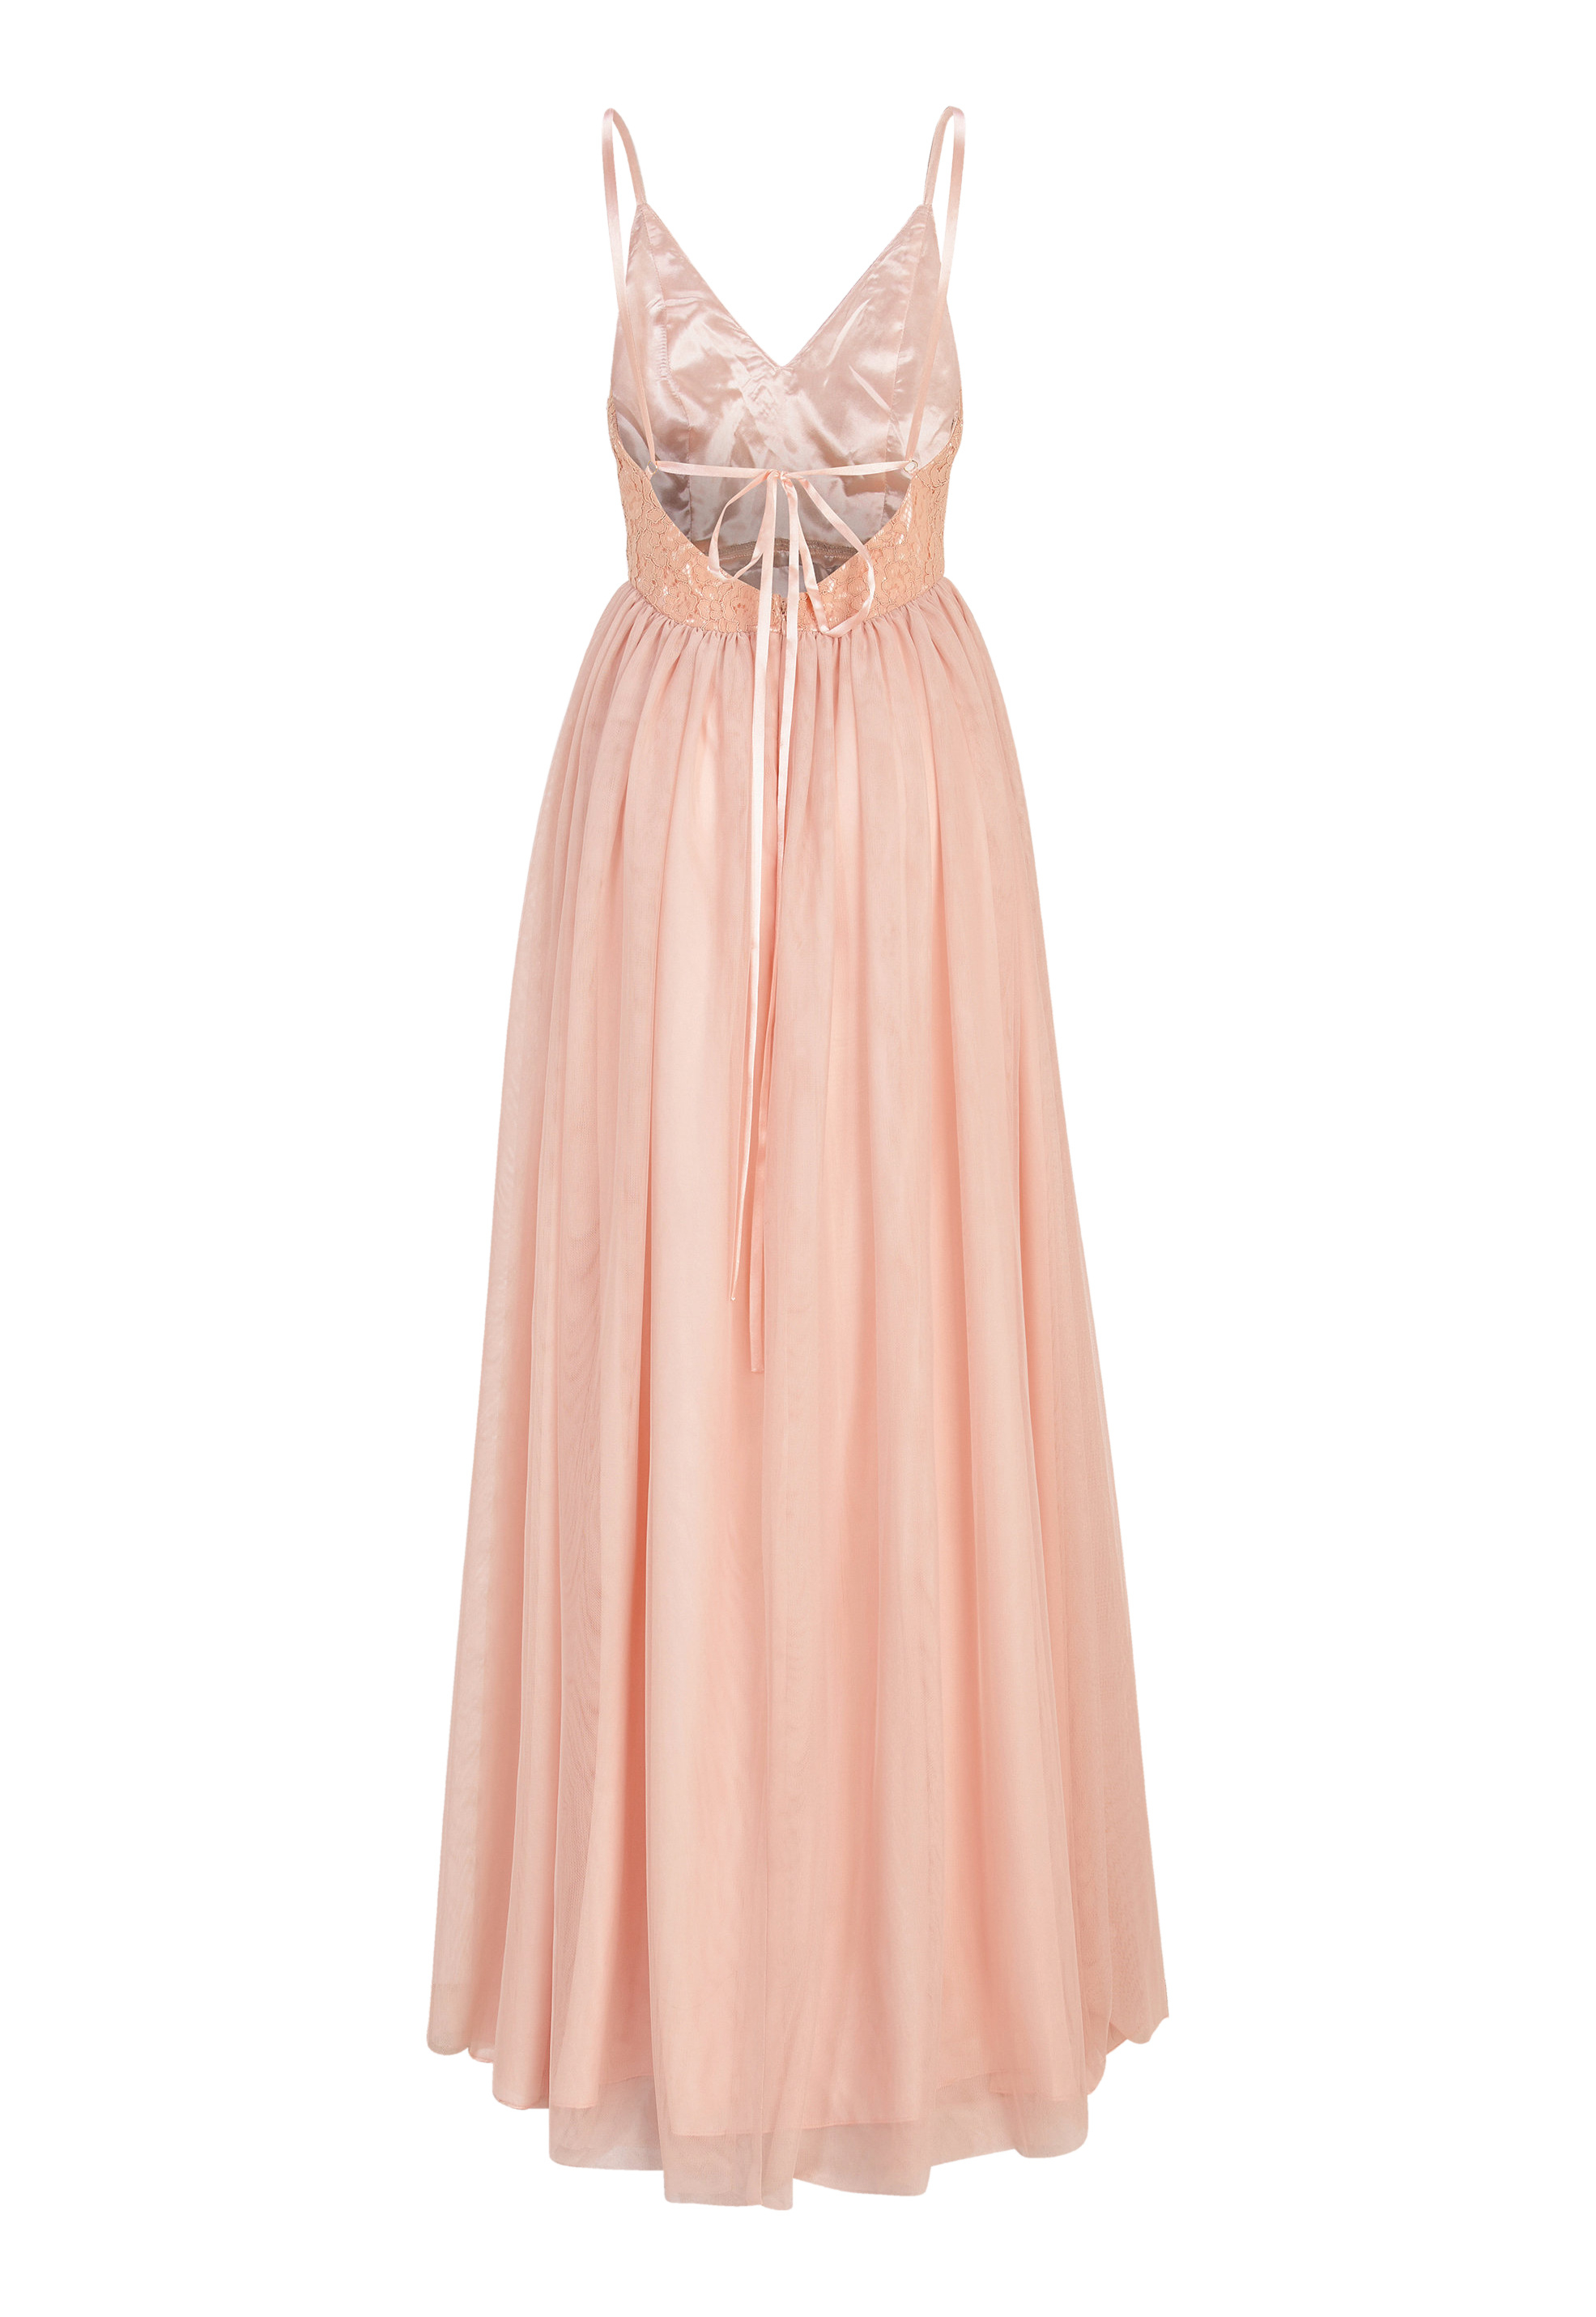 b7406961678f Moments New York Daphne Mesh Gown Dusty pink - Bubbleroom